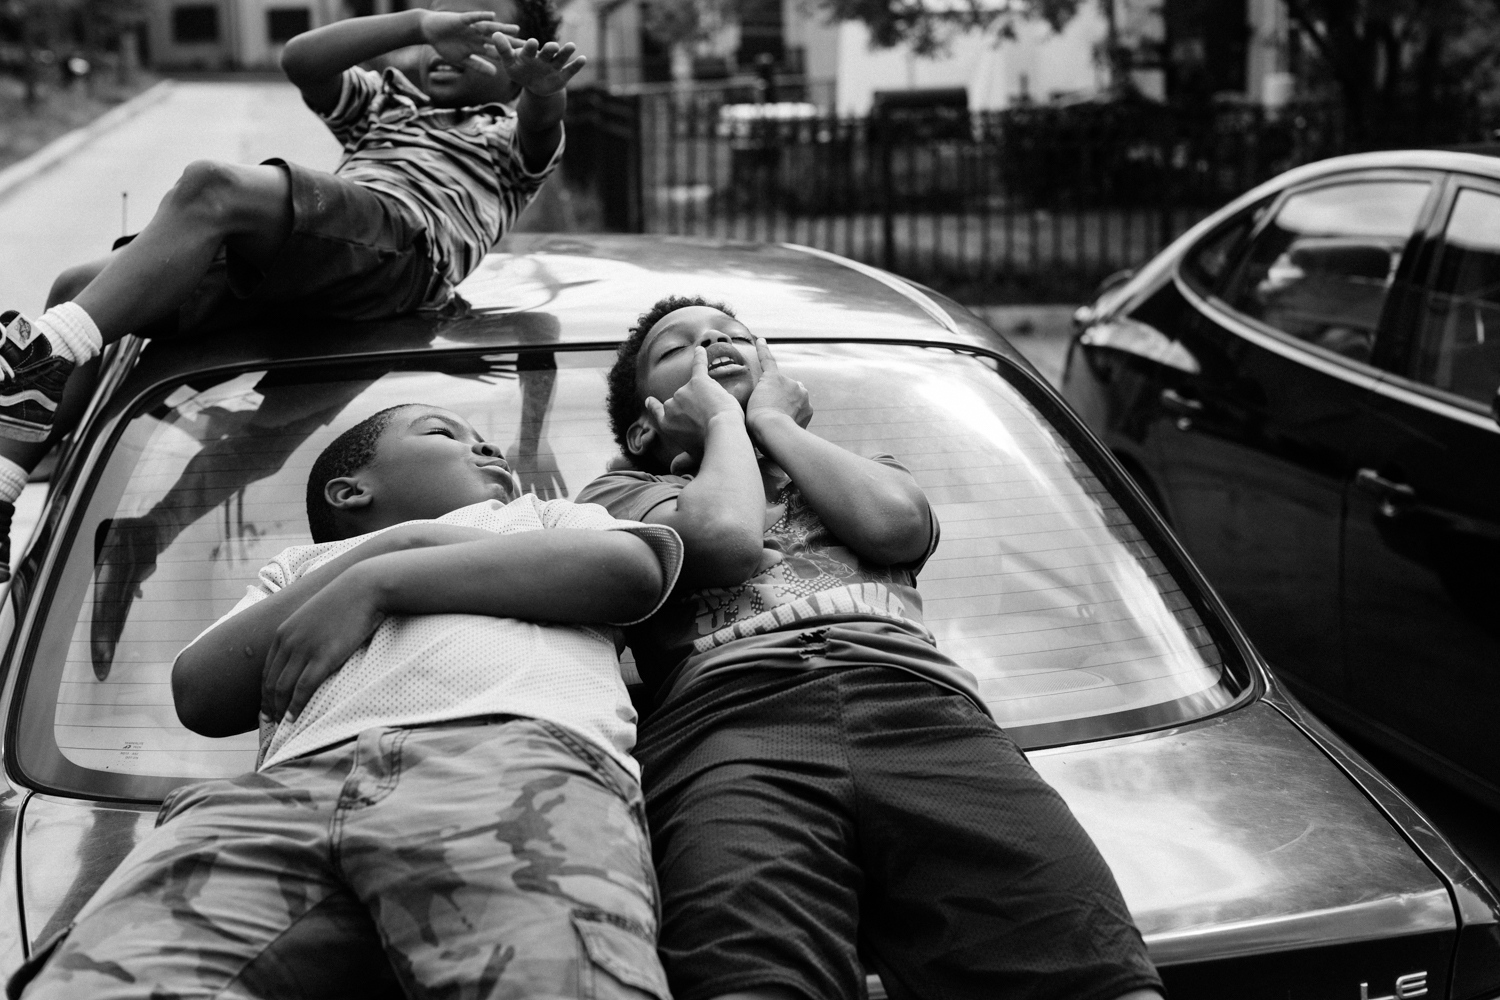 Dylan relaxes with his friends on top of his mother's car in Barry Farm on July 25, 2017.